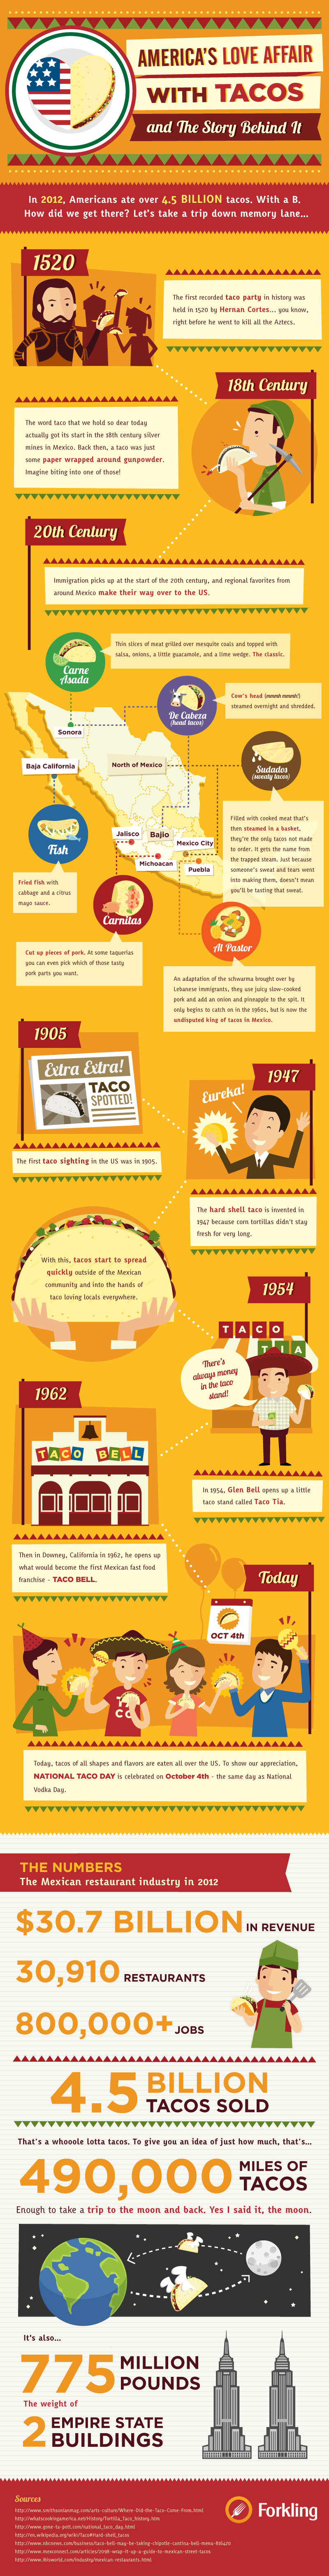 Americas-love-affair-with-tacos-infographic